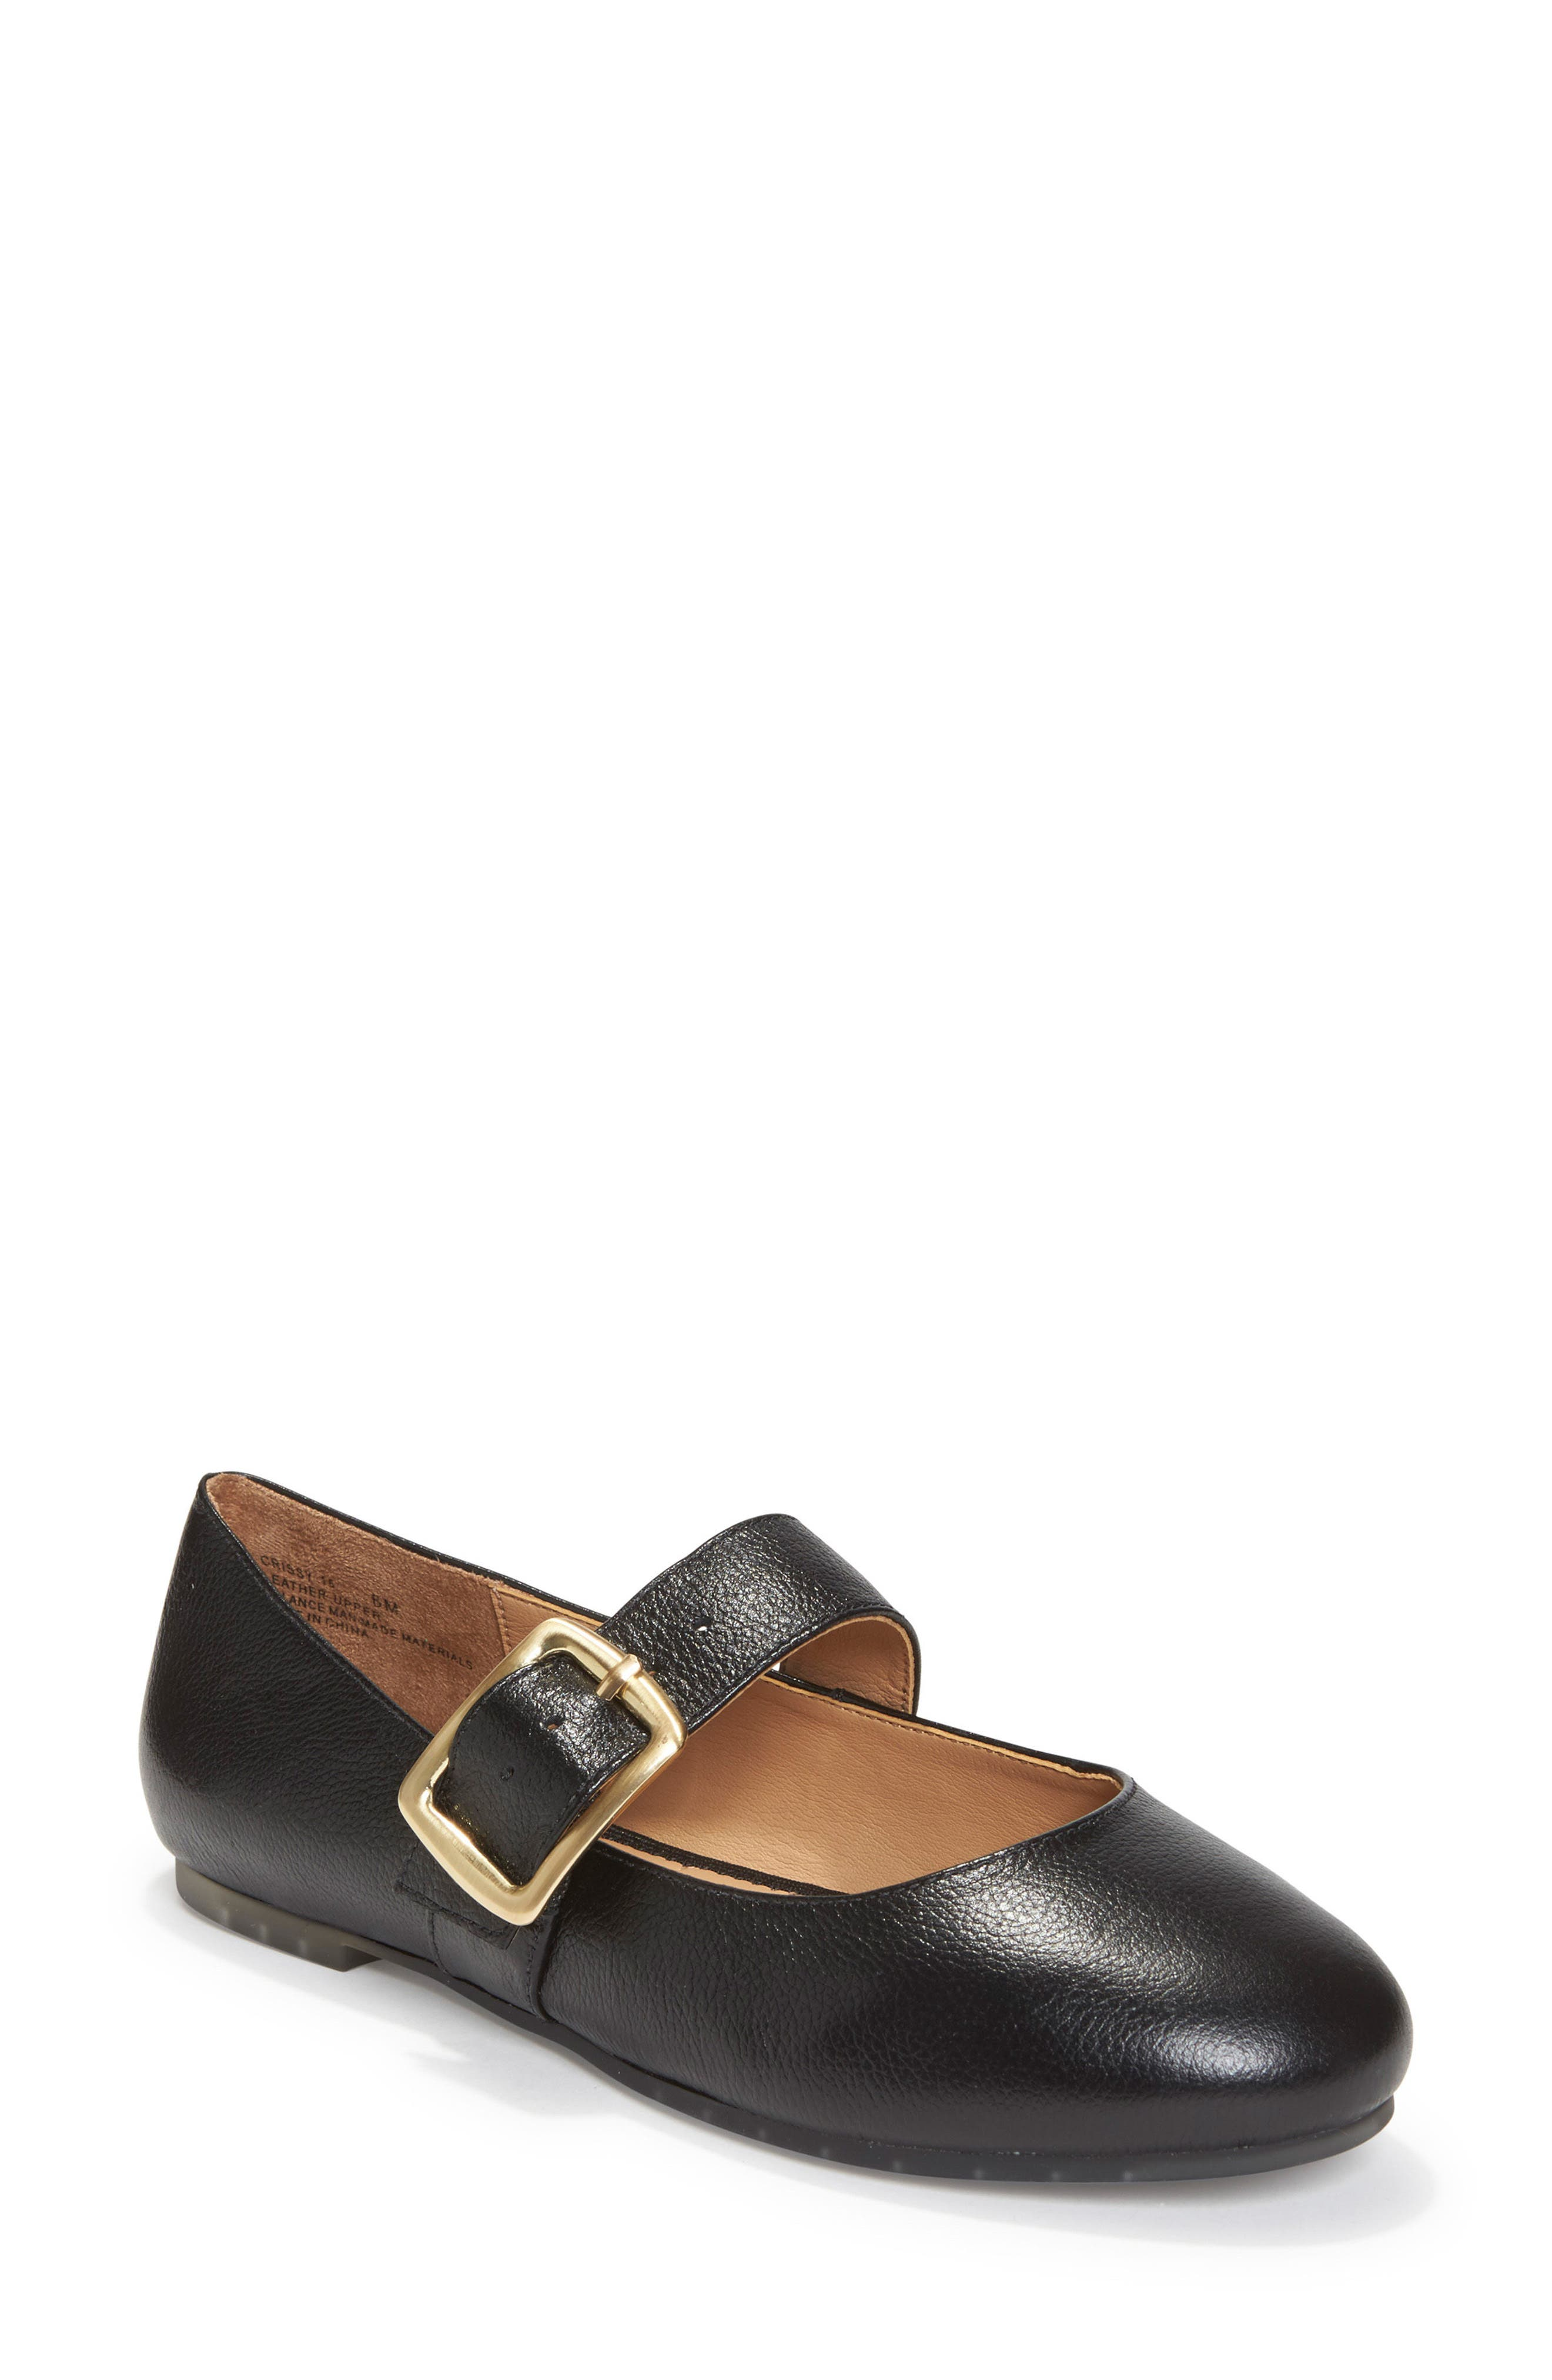 Crissy Mary Jane Flat,                         Main,                         color, 002